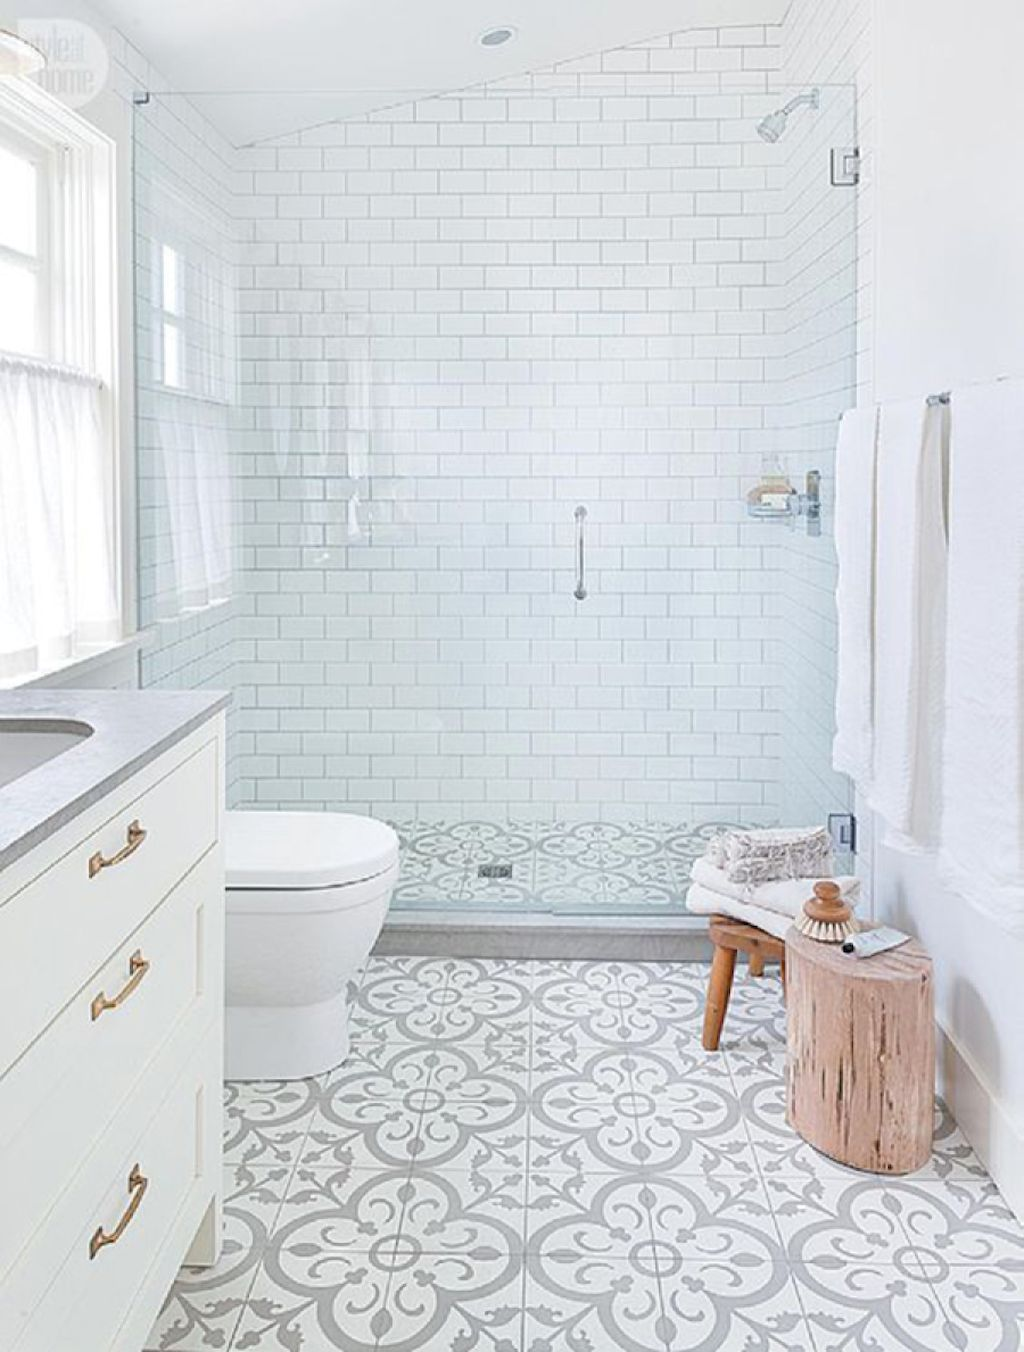 Awesome Tile Styles for Bathroom